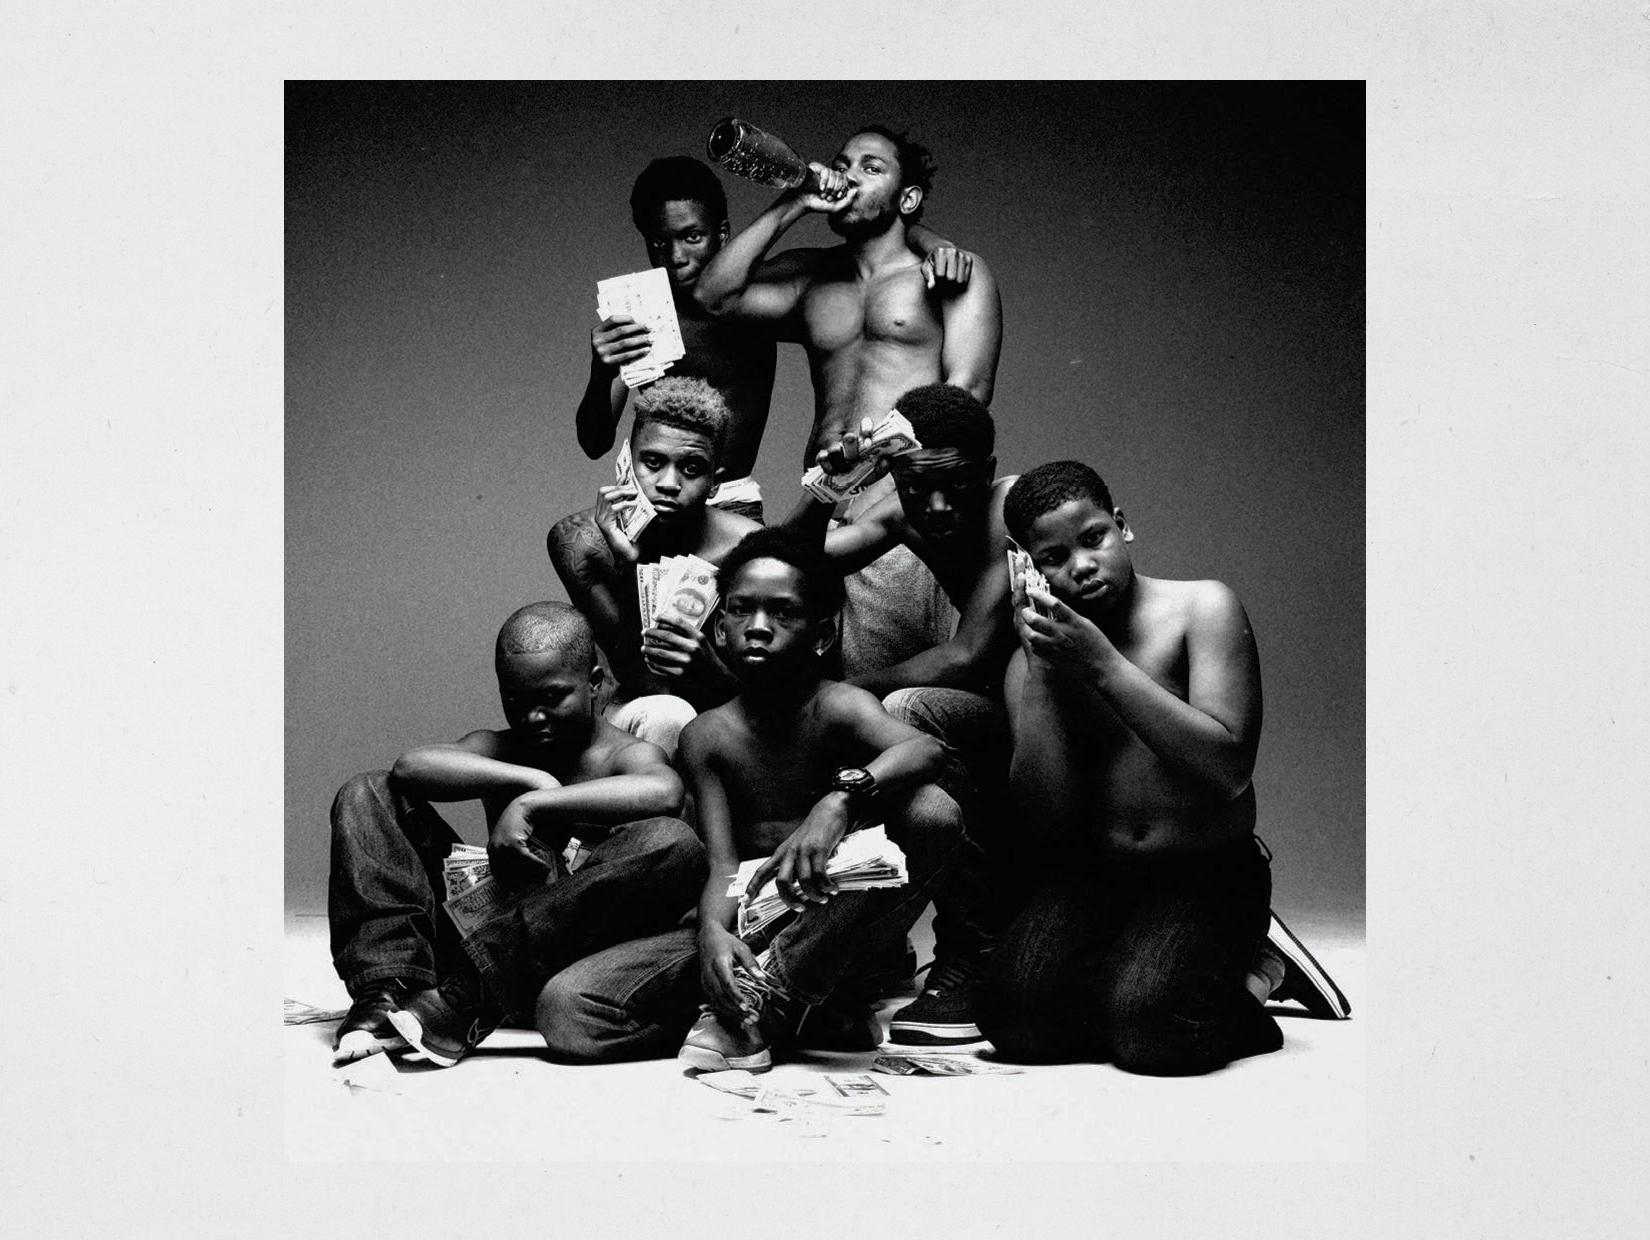 1. Kendrick Lamar - To Pimp A Butterfly